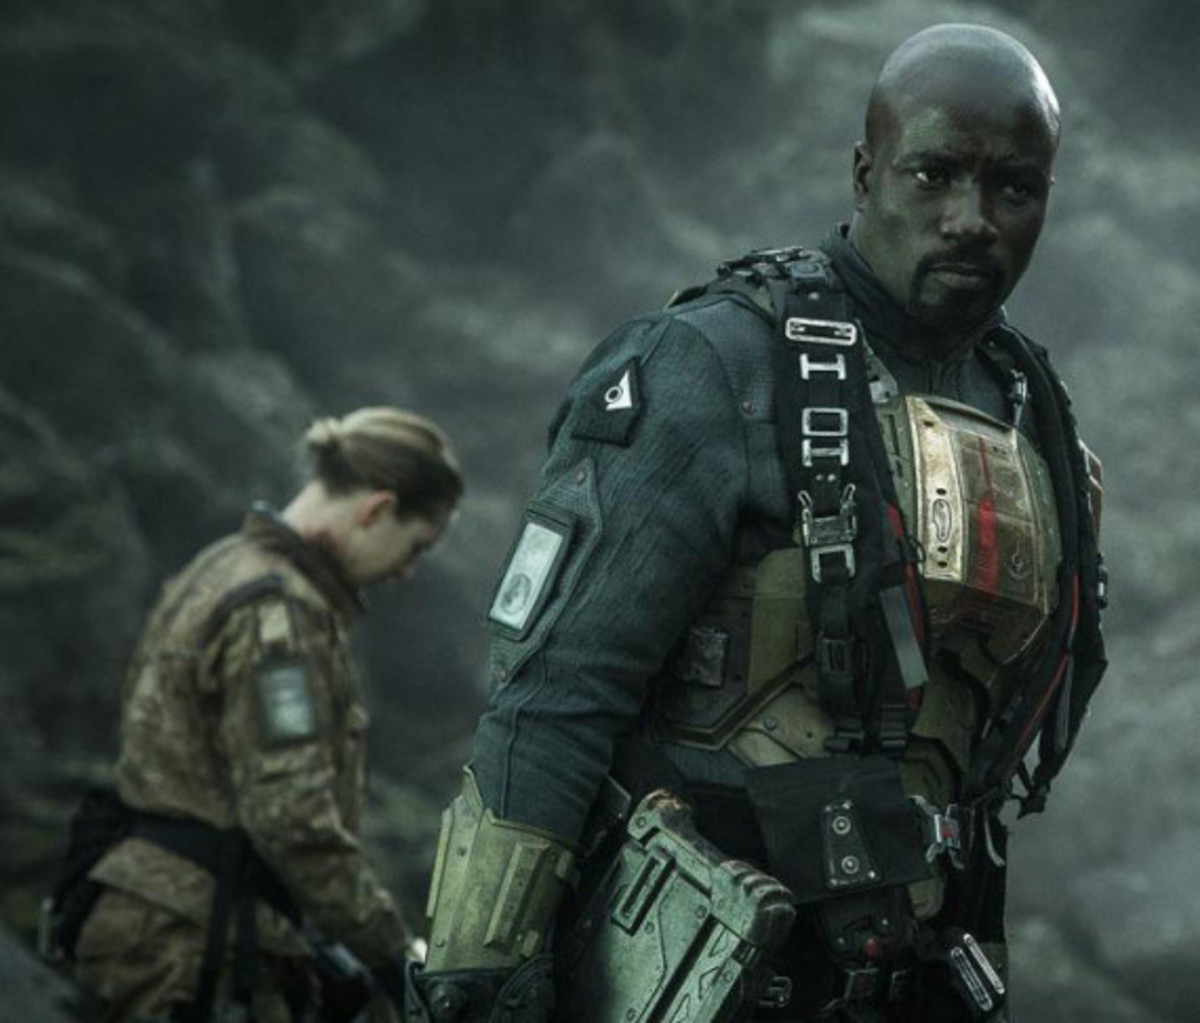 Halo: Nightfall by Ridley Scott & Xbox Entertainment Studios | Teaser Video - 0